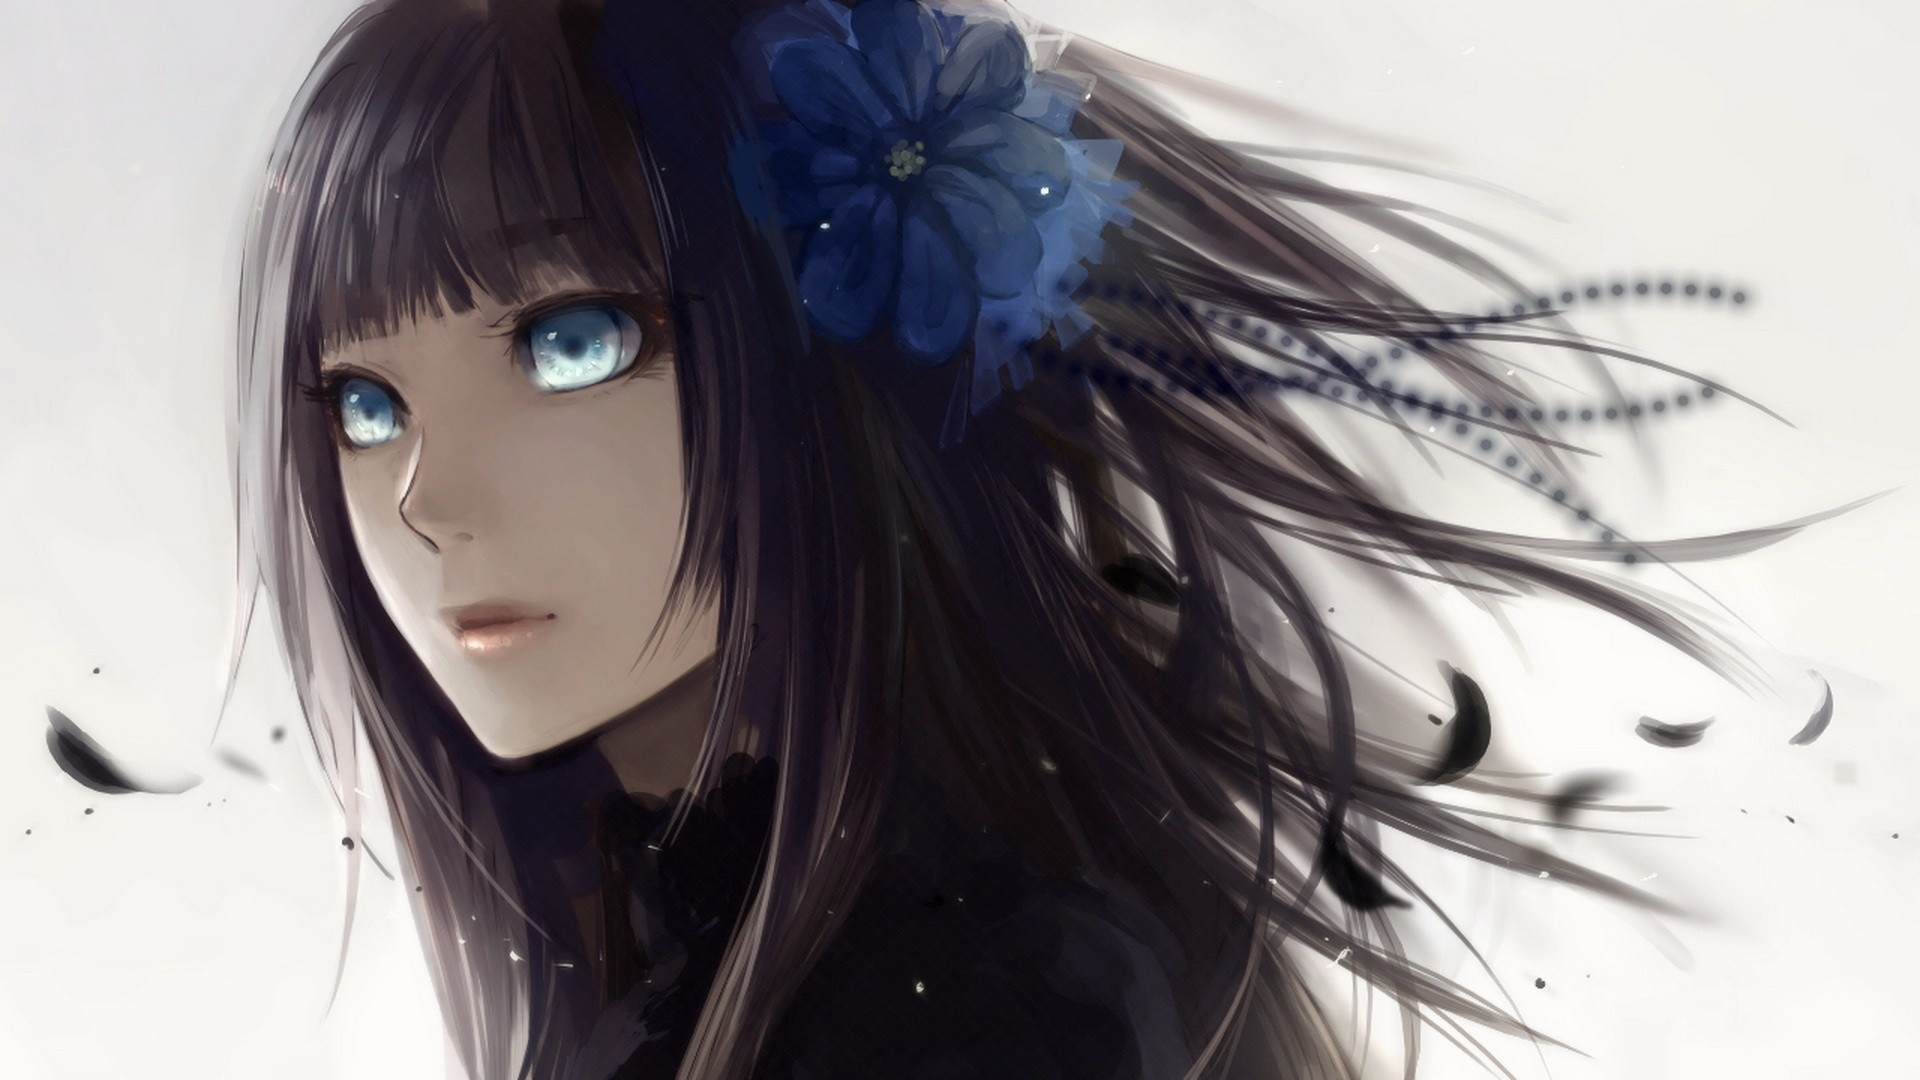 Anime girl with black hair and blue eyes 1920 x 1080 download